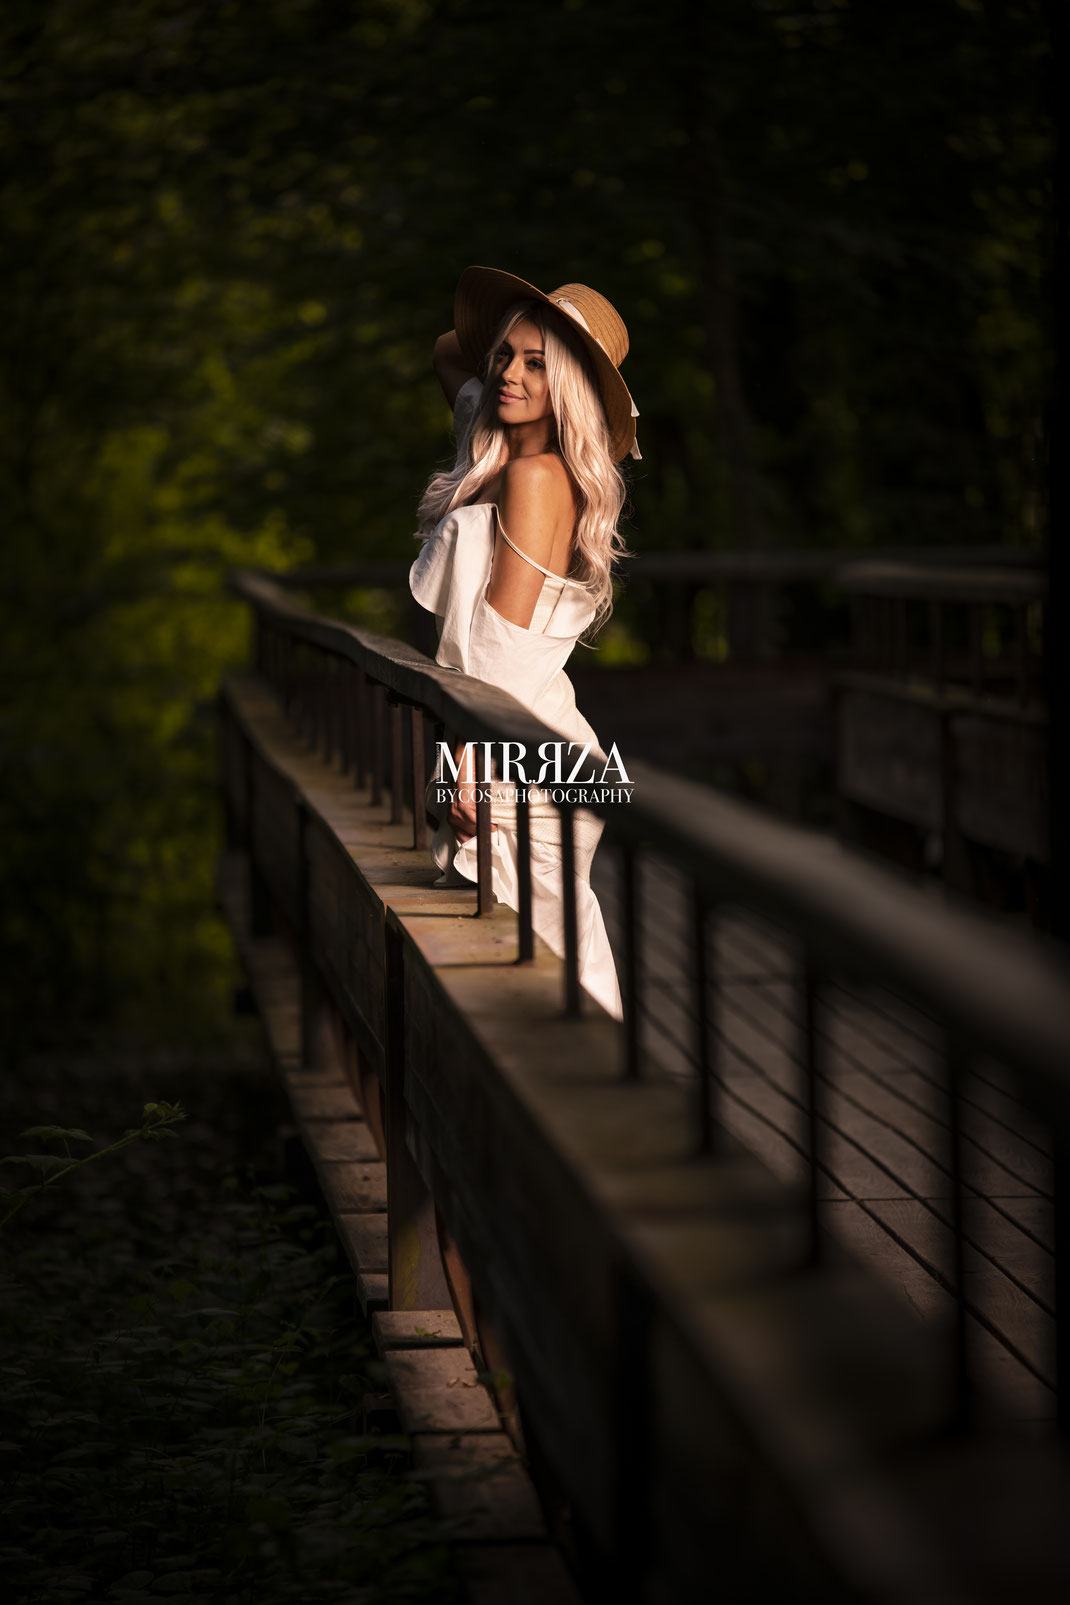 Sommer 2019 © Mirza.C - www.bycosaphotography.ch